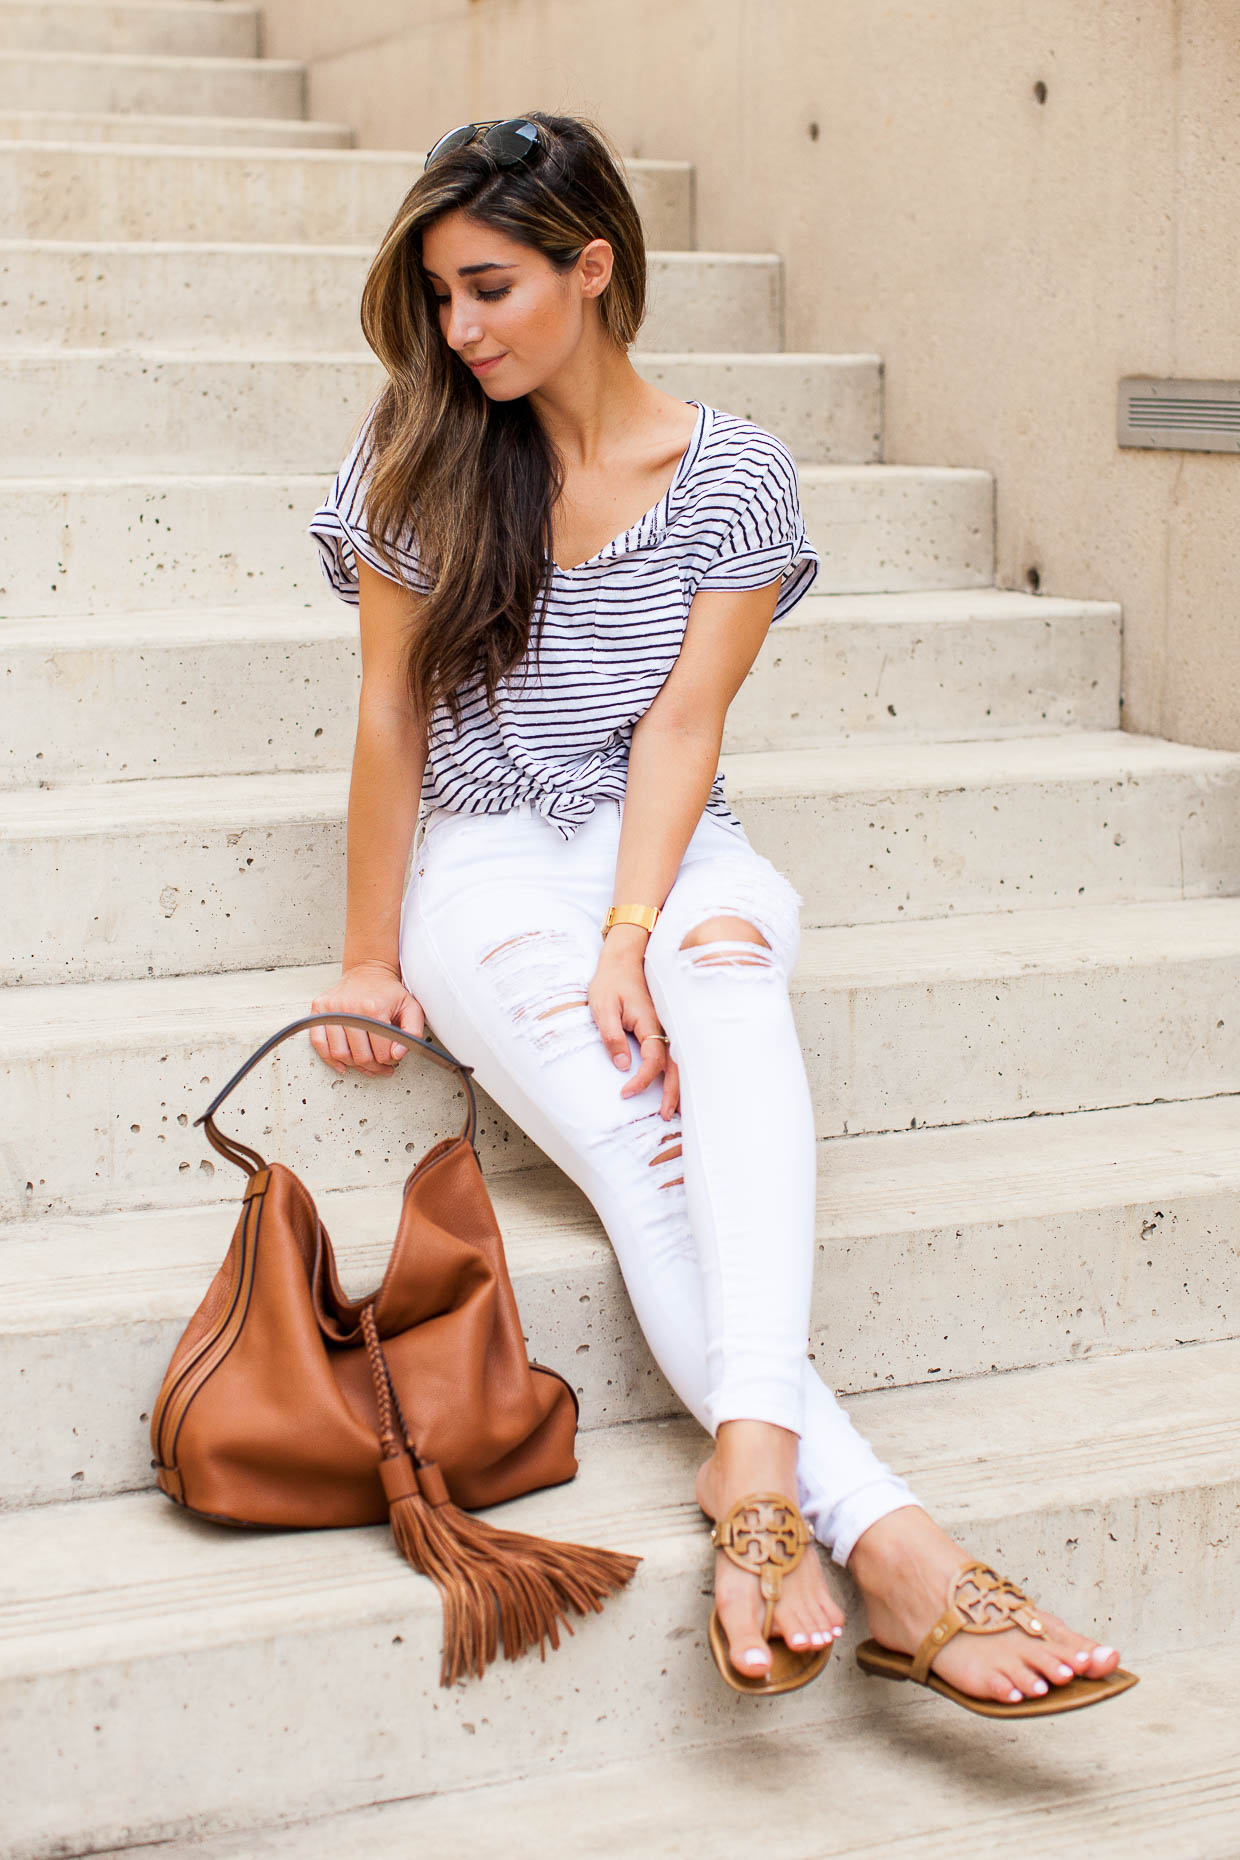 a930d36ed03 Fashion Blogger The Darling Detail wearing Stem Split Neck Tee and FRAME   Le Color  Skinny Jeans with Rebecca Minkoff Isobel Hobo and Tory Burch   Miller  ...